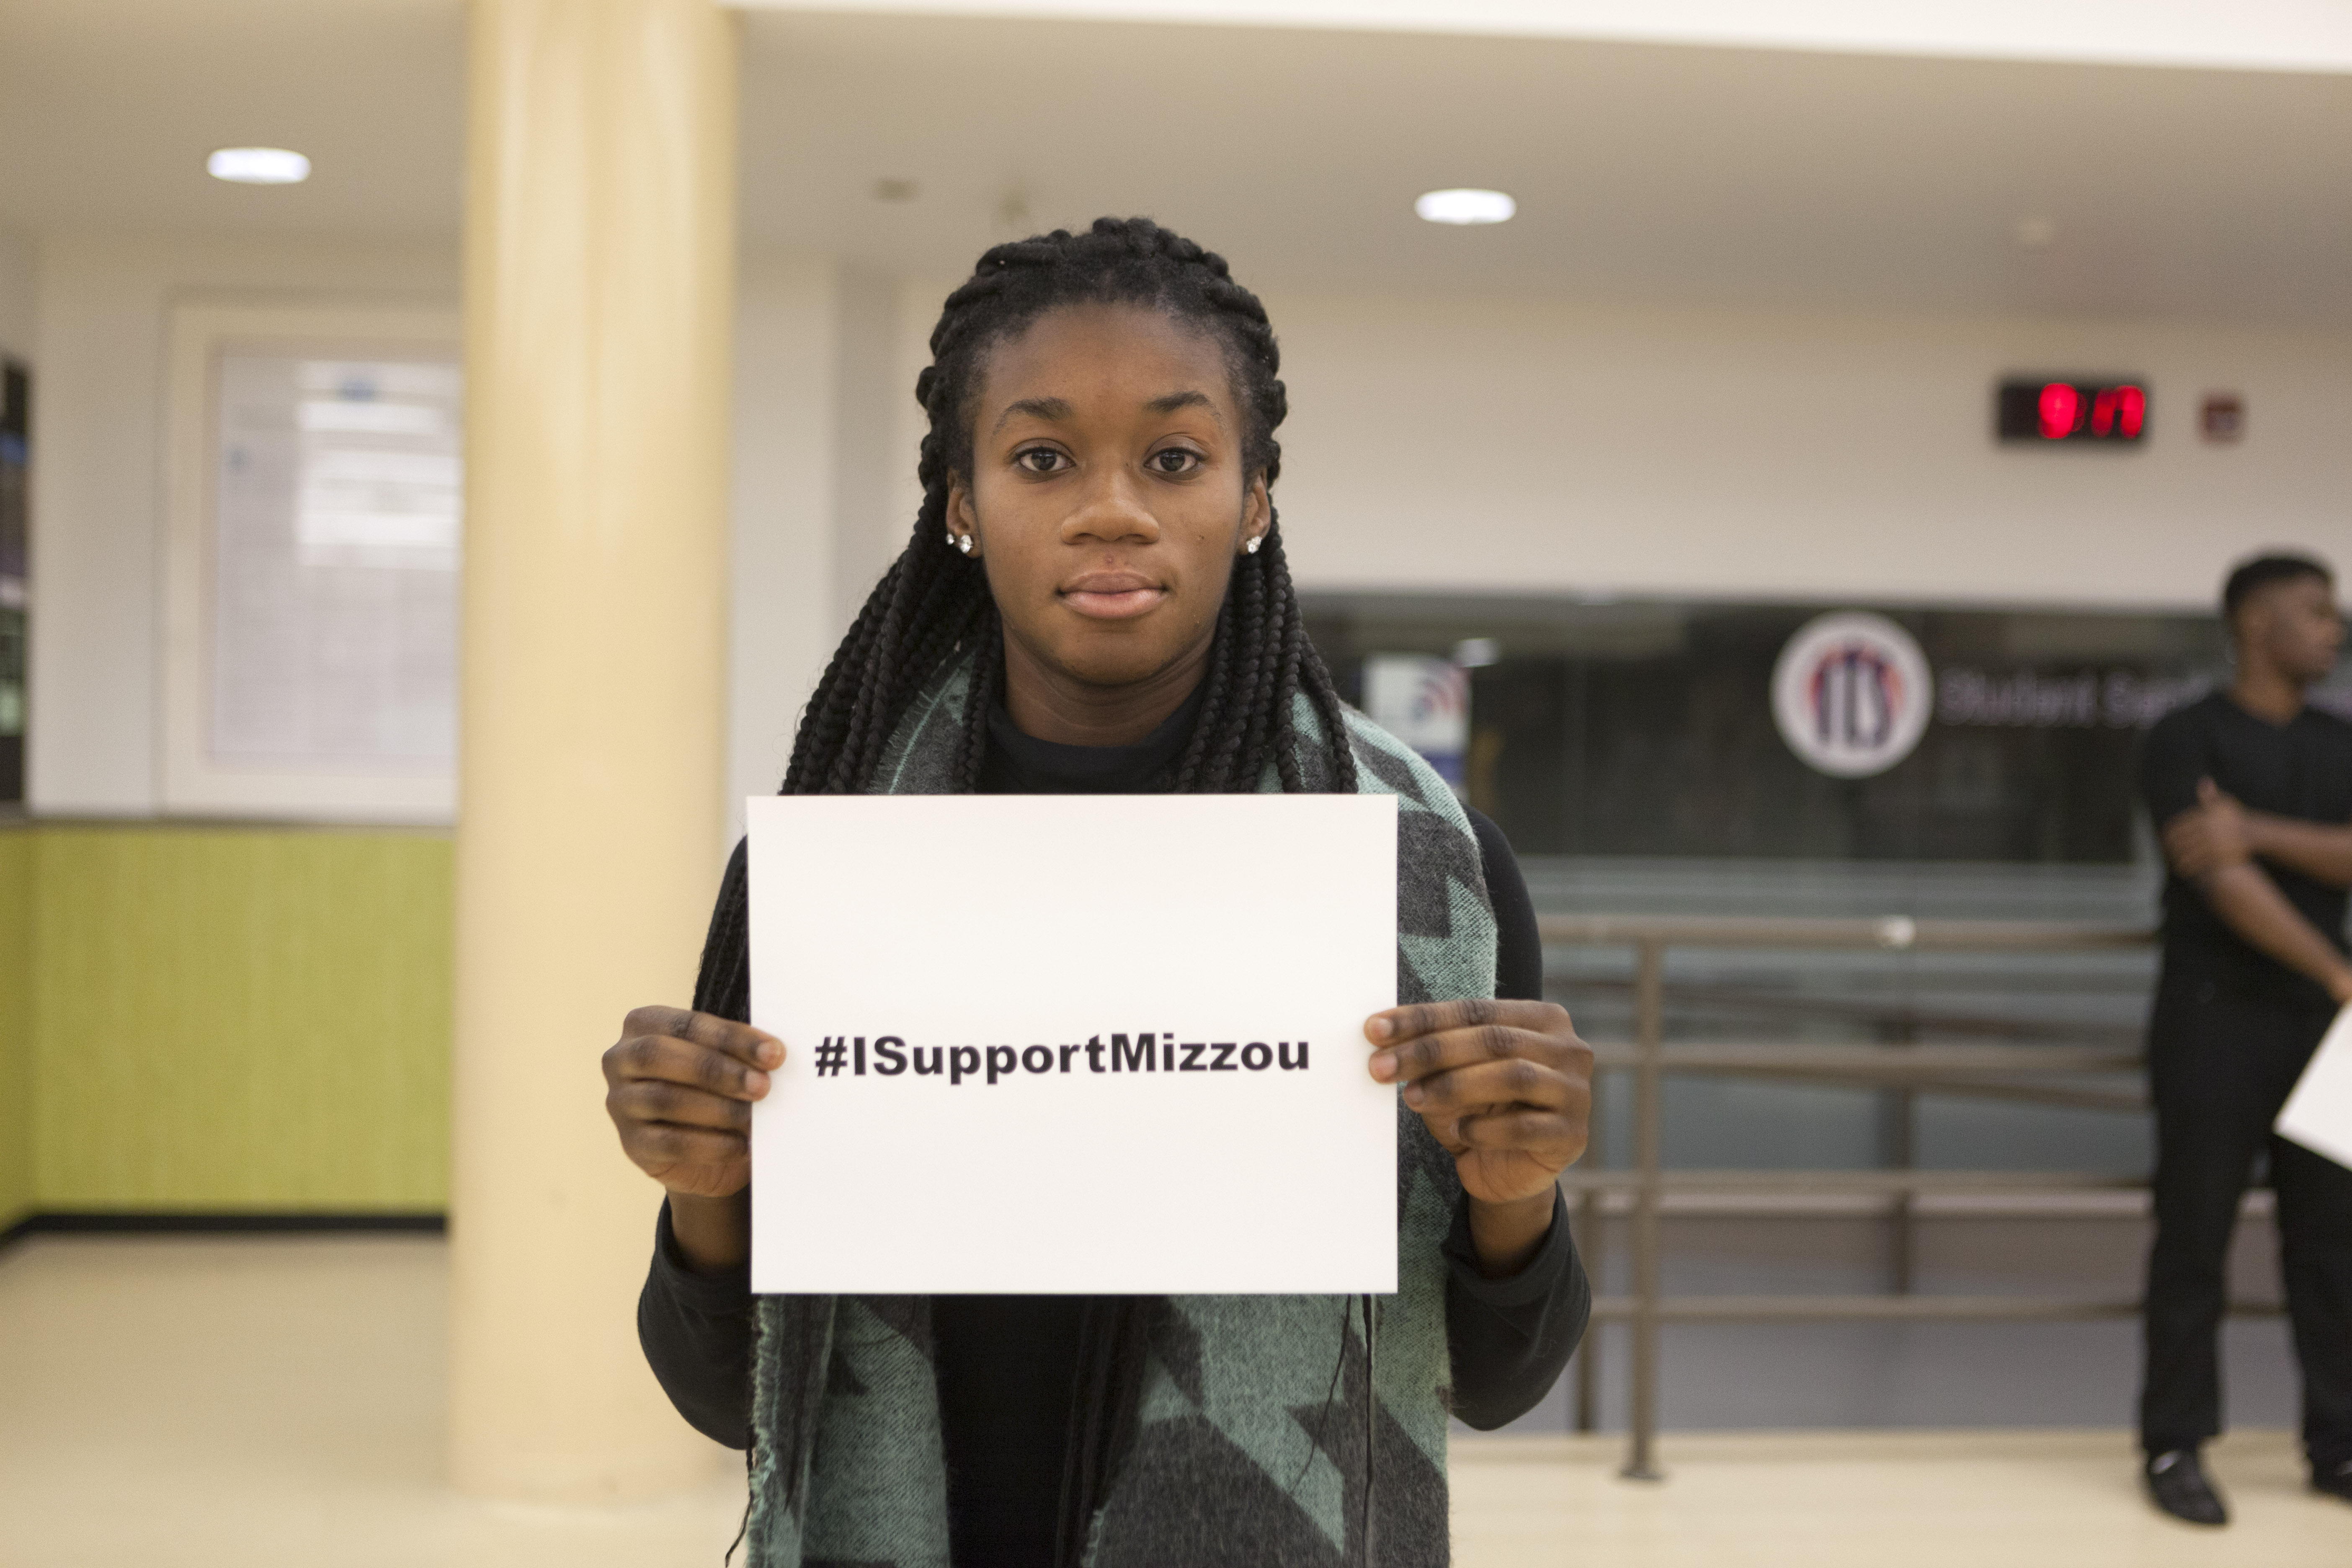 Students had the opportunity to show their support for Missouri Thursday.